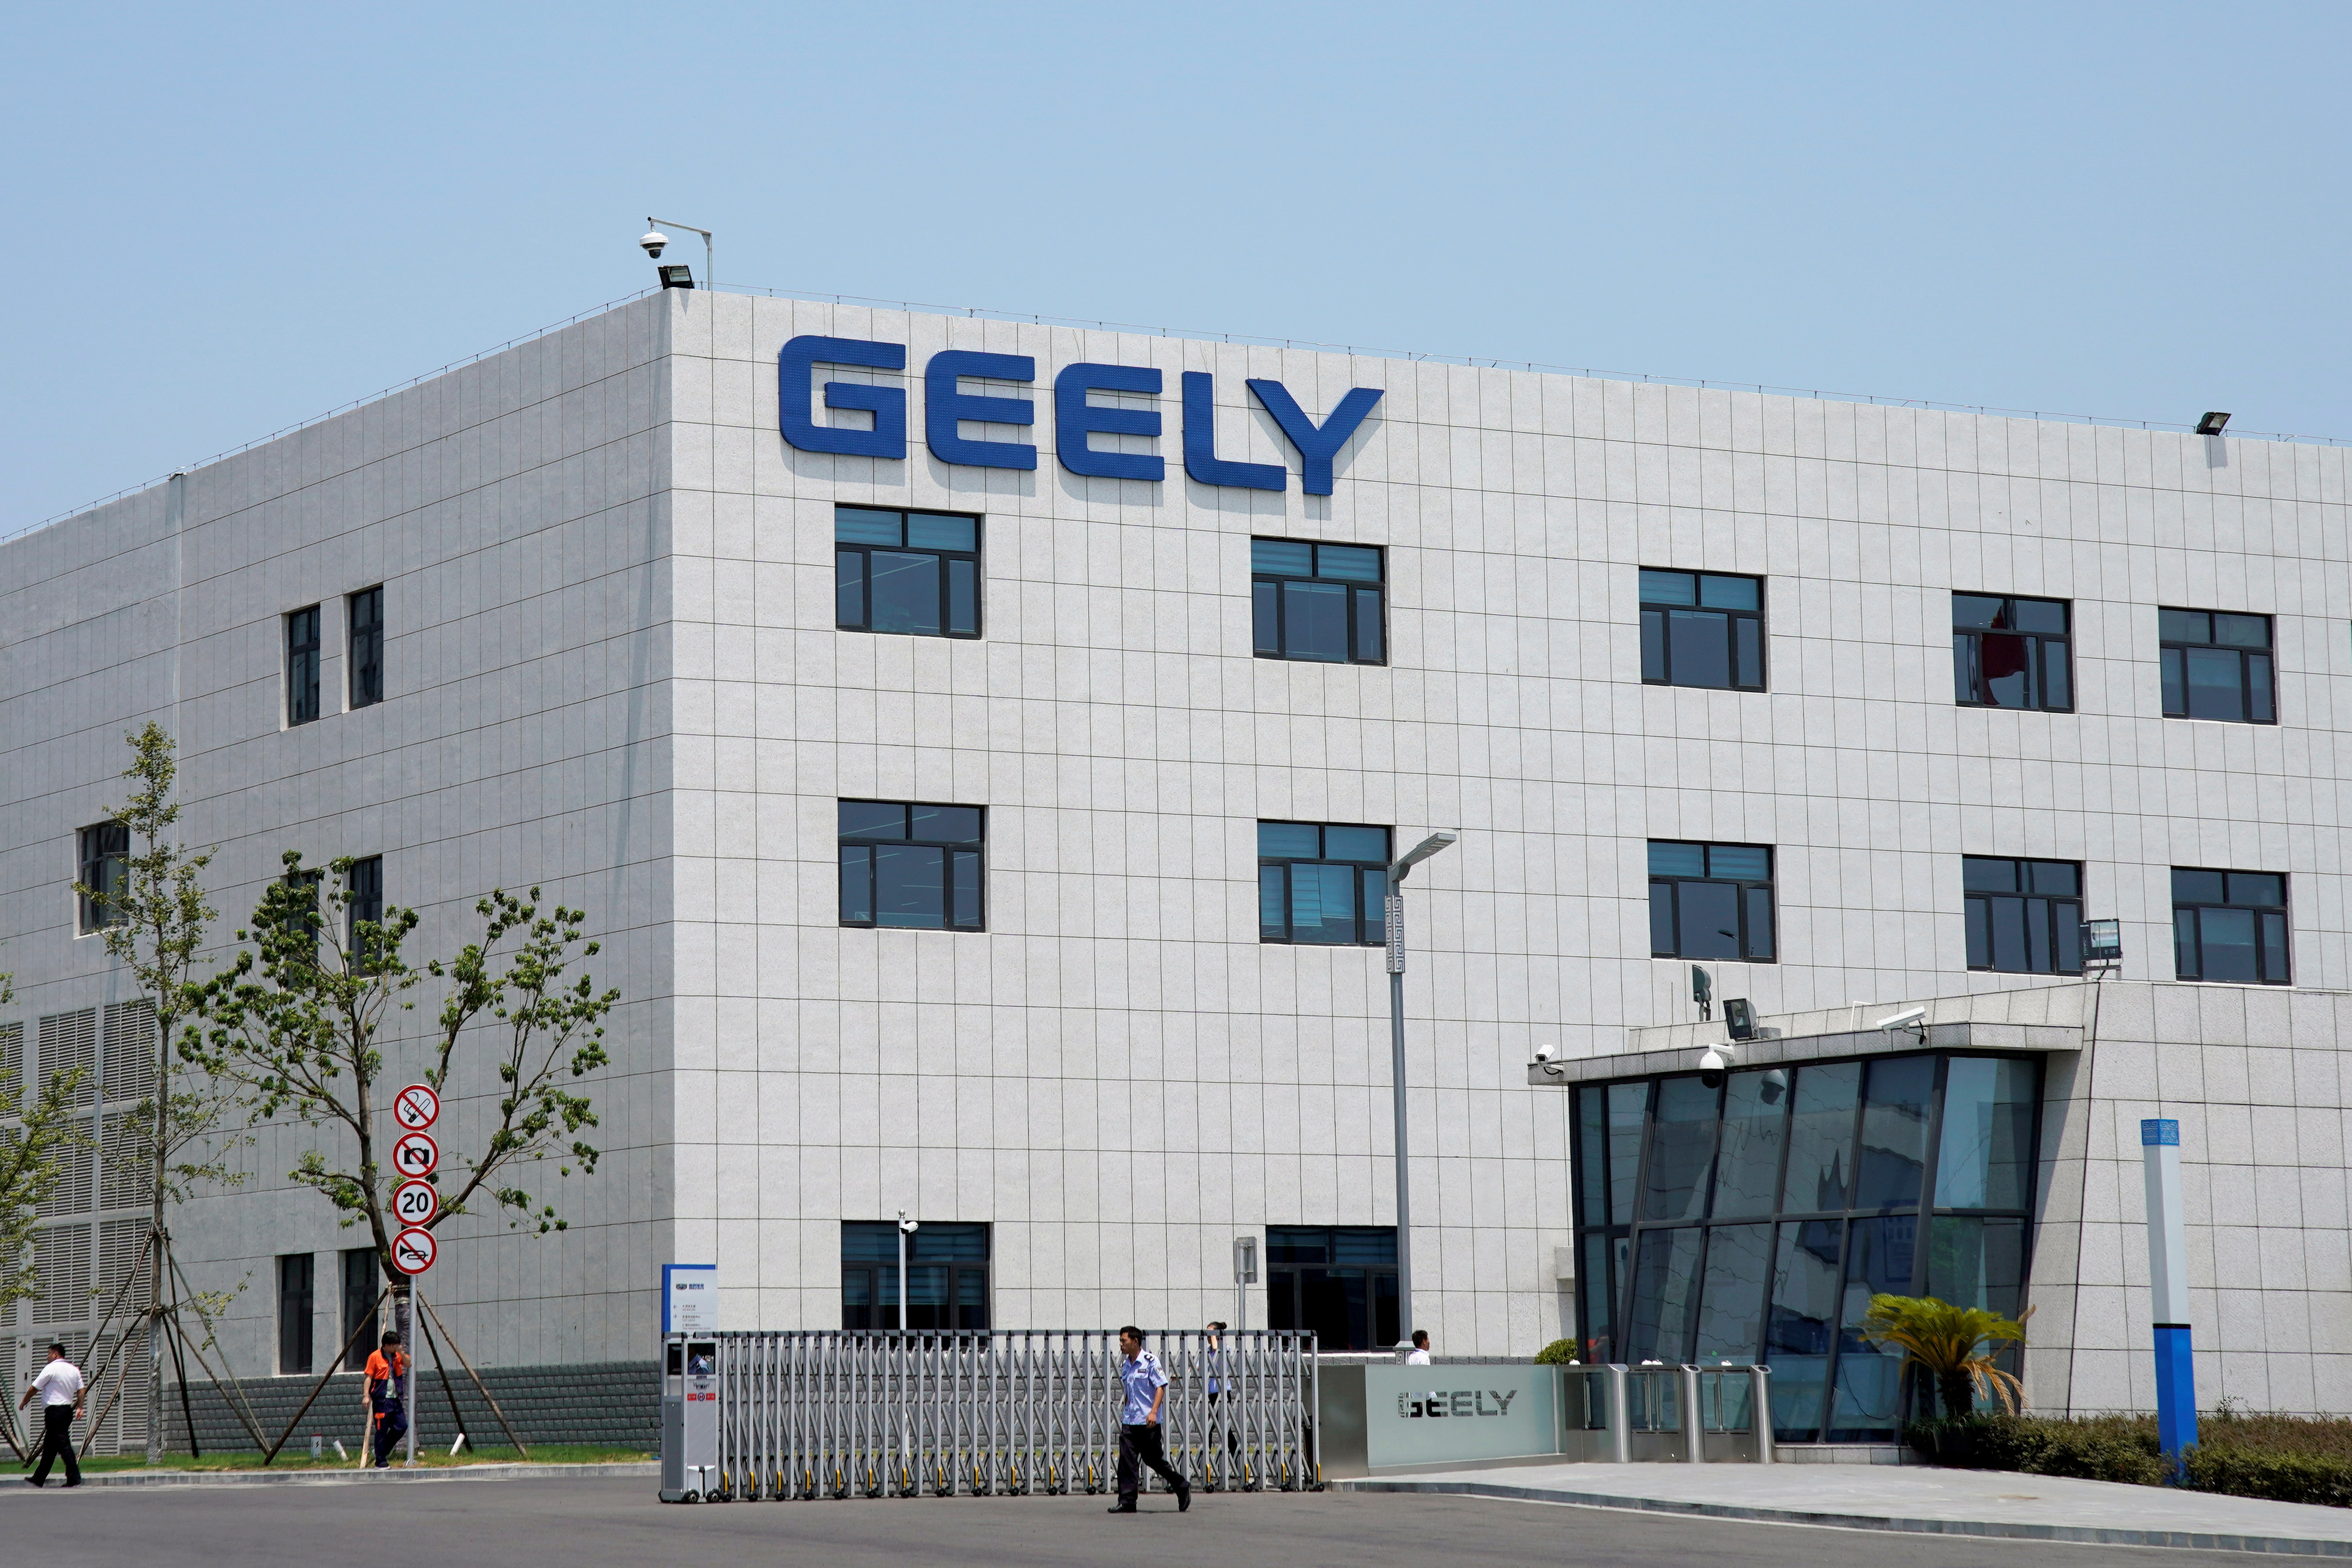 A building of the Geely Auto Research Institute is seen in Ningbo, Zhejiang province, China August 4, 2017.  REUTERS/Aly Song/Files